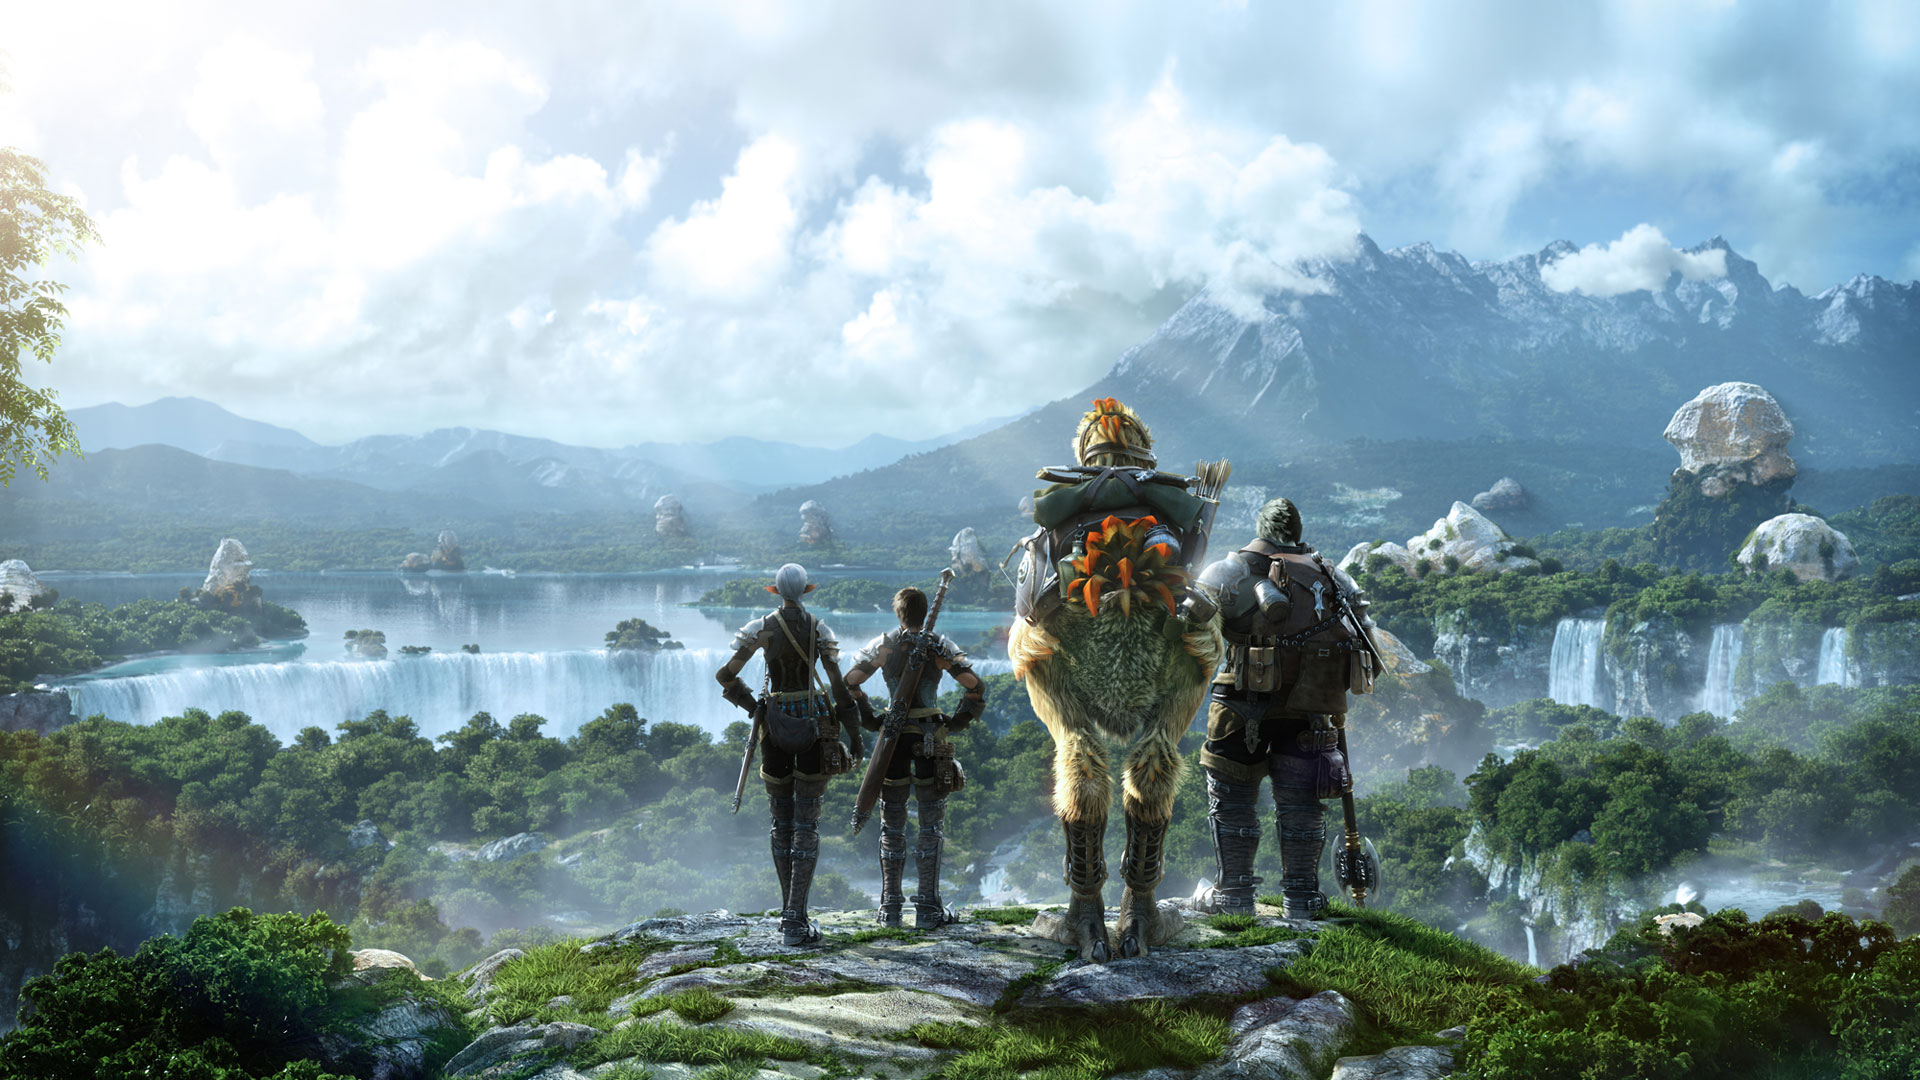 Can Final Fantasy be restored to its former glory?